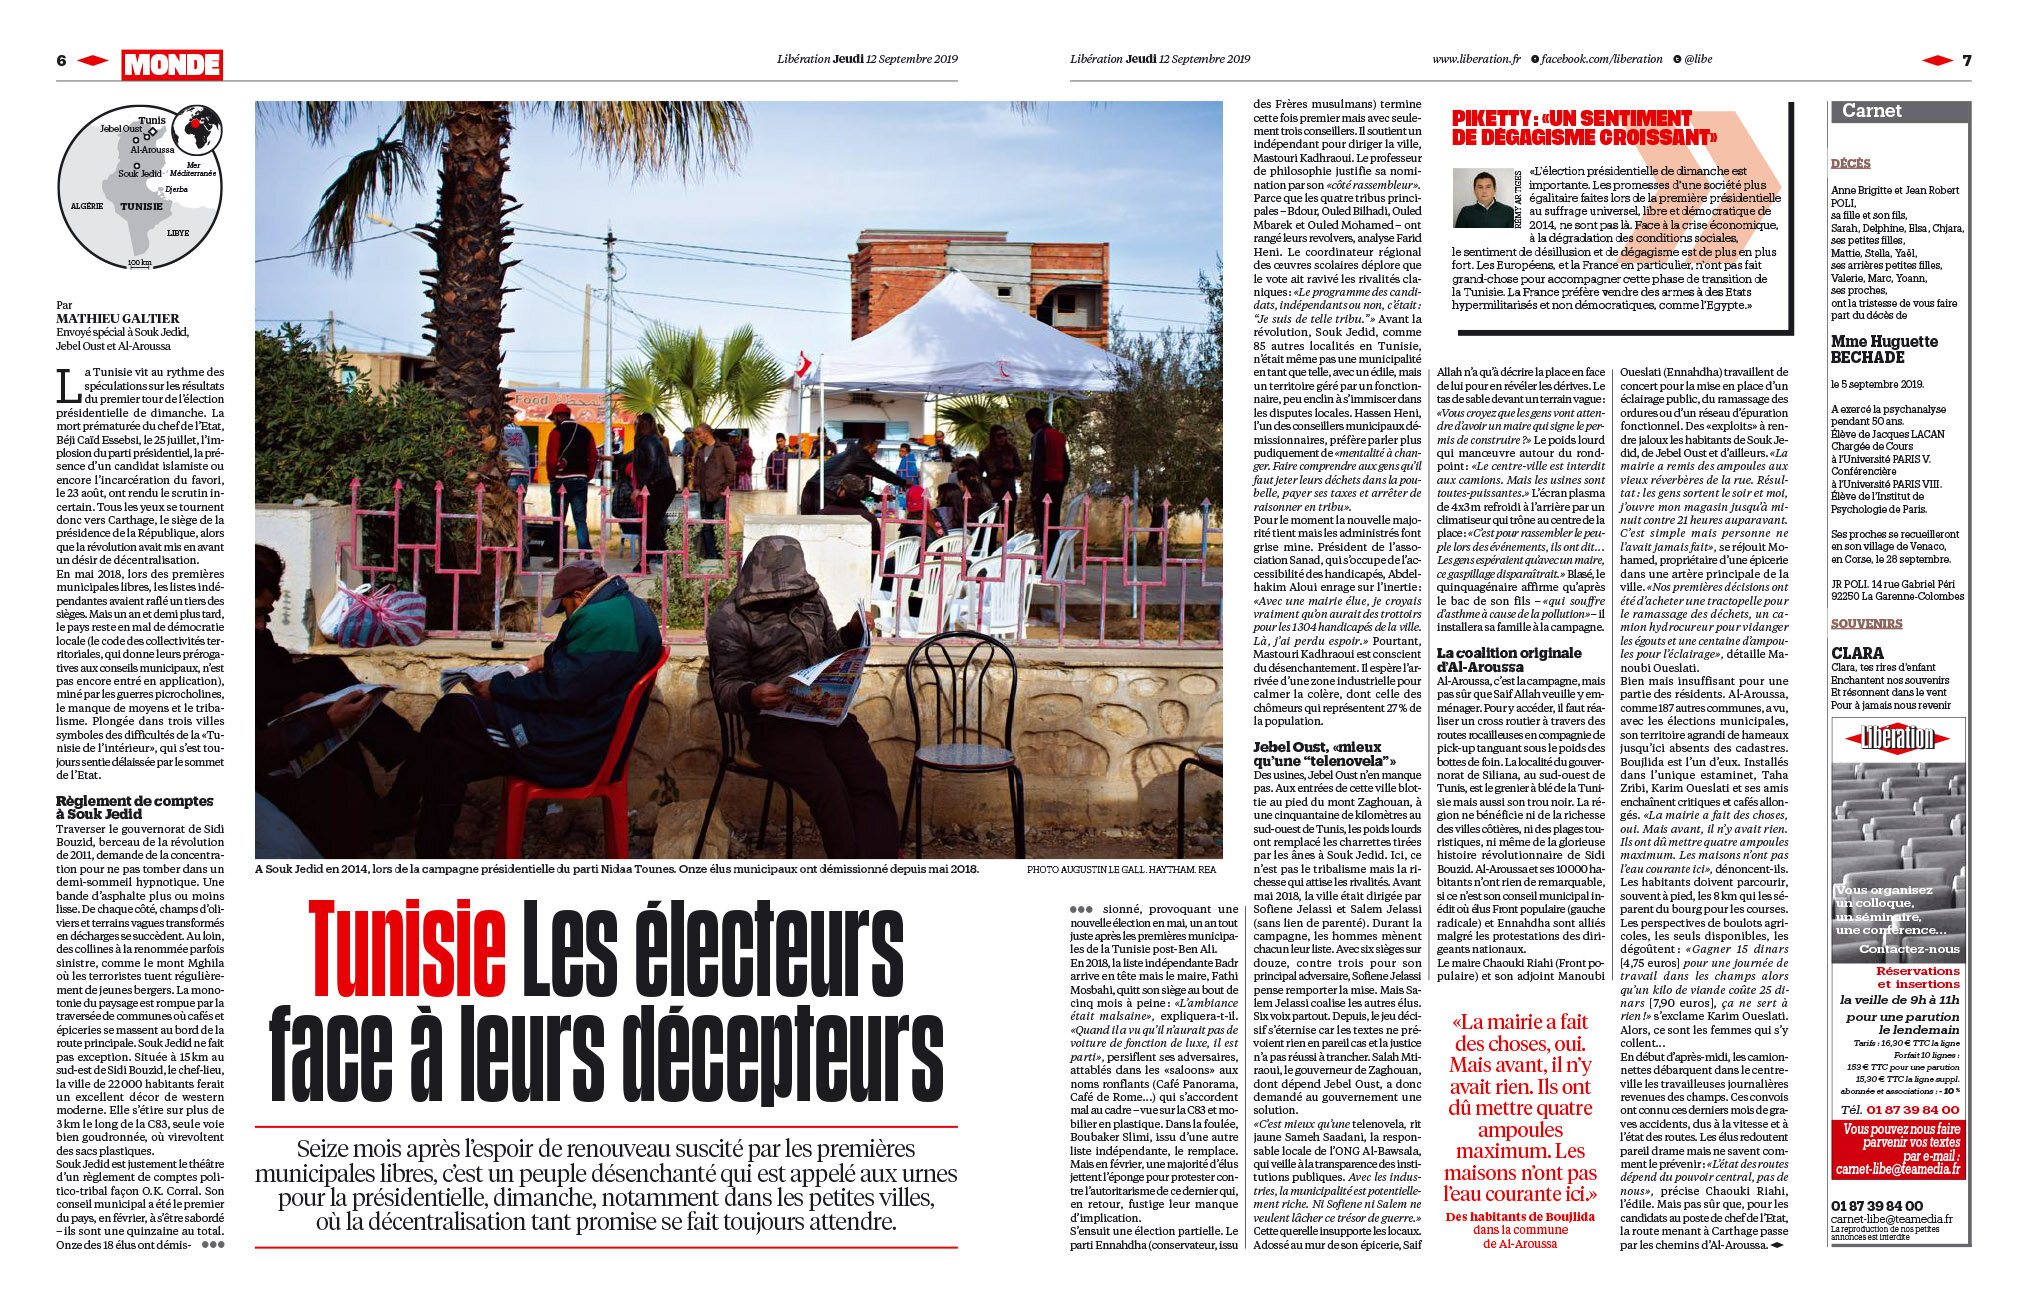 Libération, Sept. 11, 2019. Elections in Tunisia.